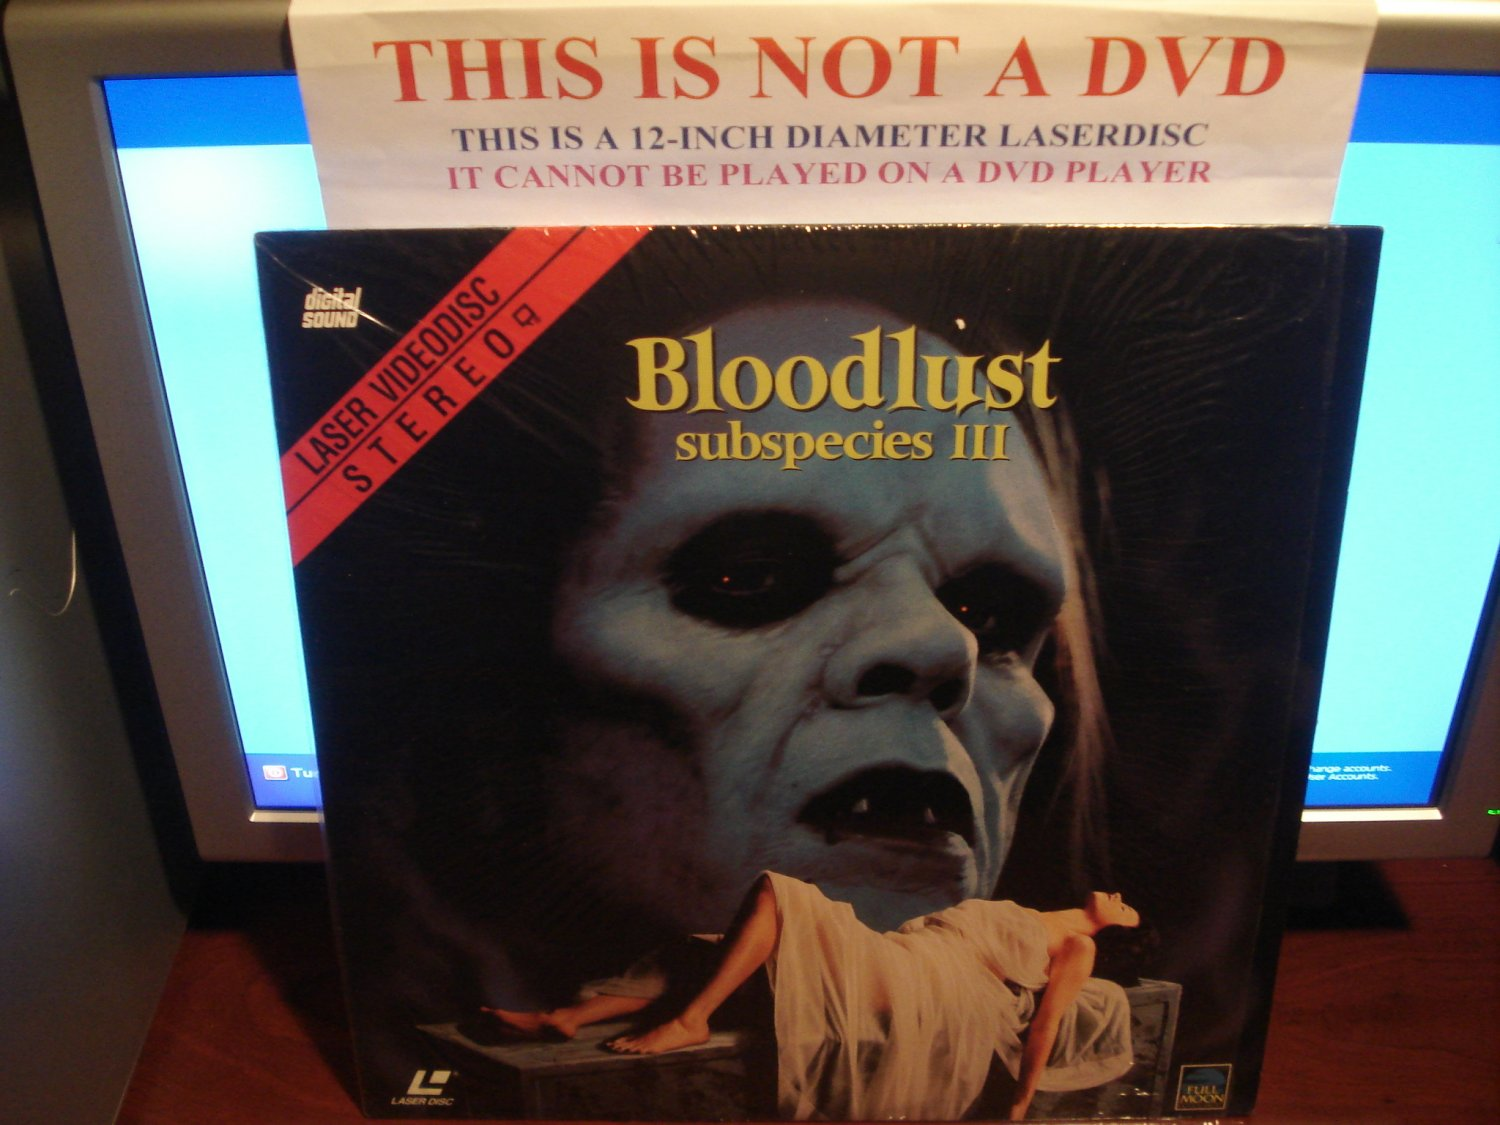 Laserdisc SUBSPECIES III: BLOODLUST 1993 Full Moon Entertainment FS Rare Horror LD